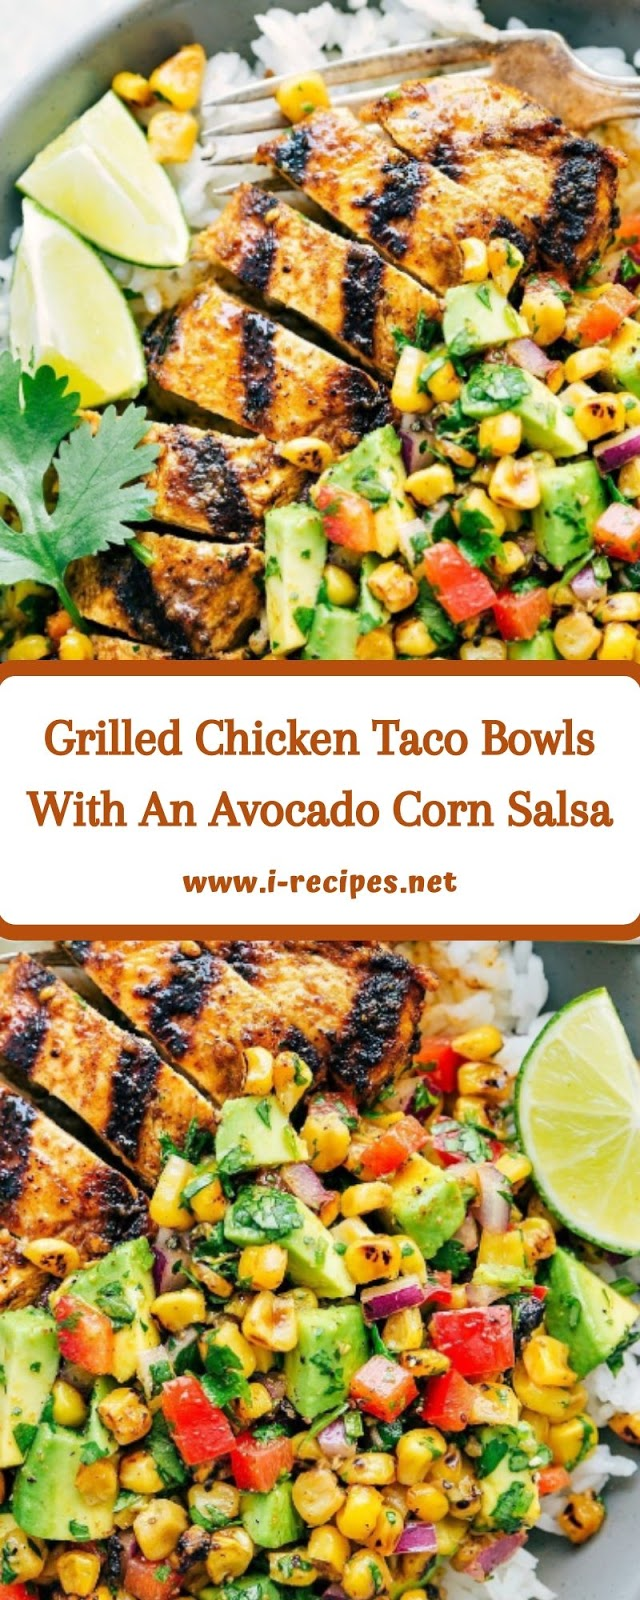 Grilled Chicken Taco Bowls With An Avocado Corn Salsa